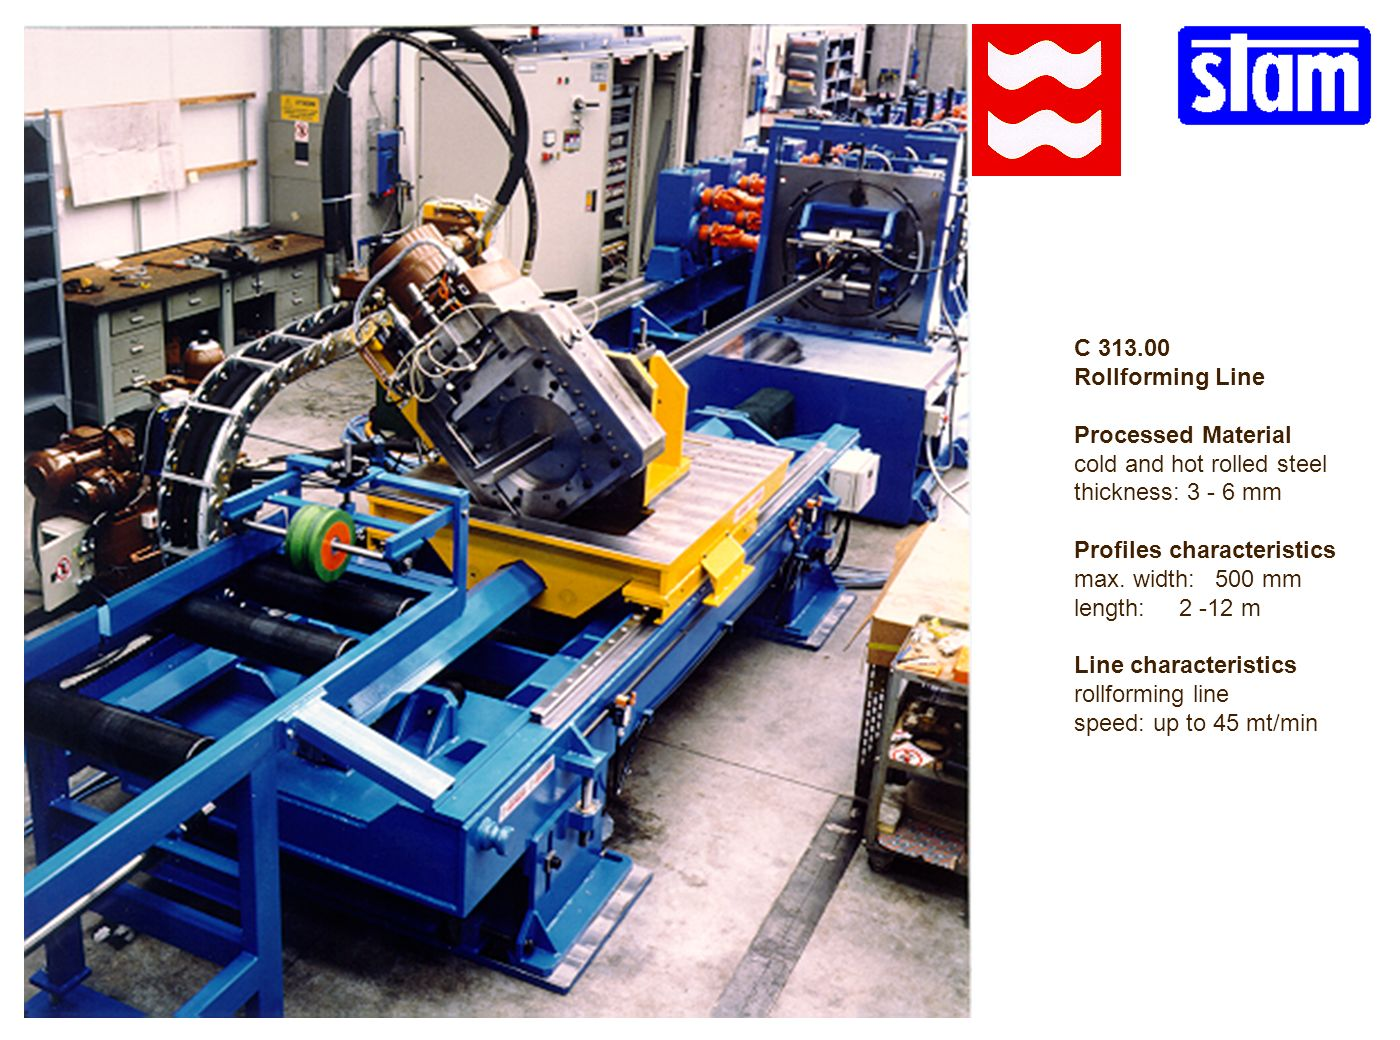 C 313.00Rollforming Line. Processed Material. cold and hot rolled steel. thickness: 3 - 6 mm. Profiles characteristics.